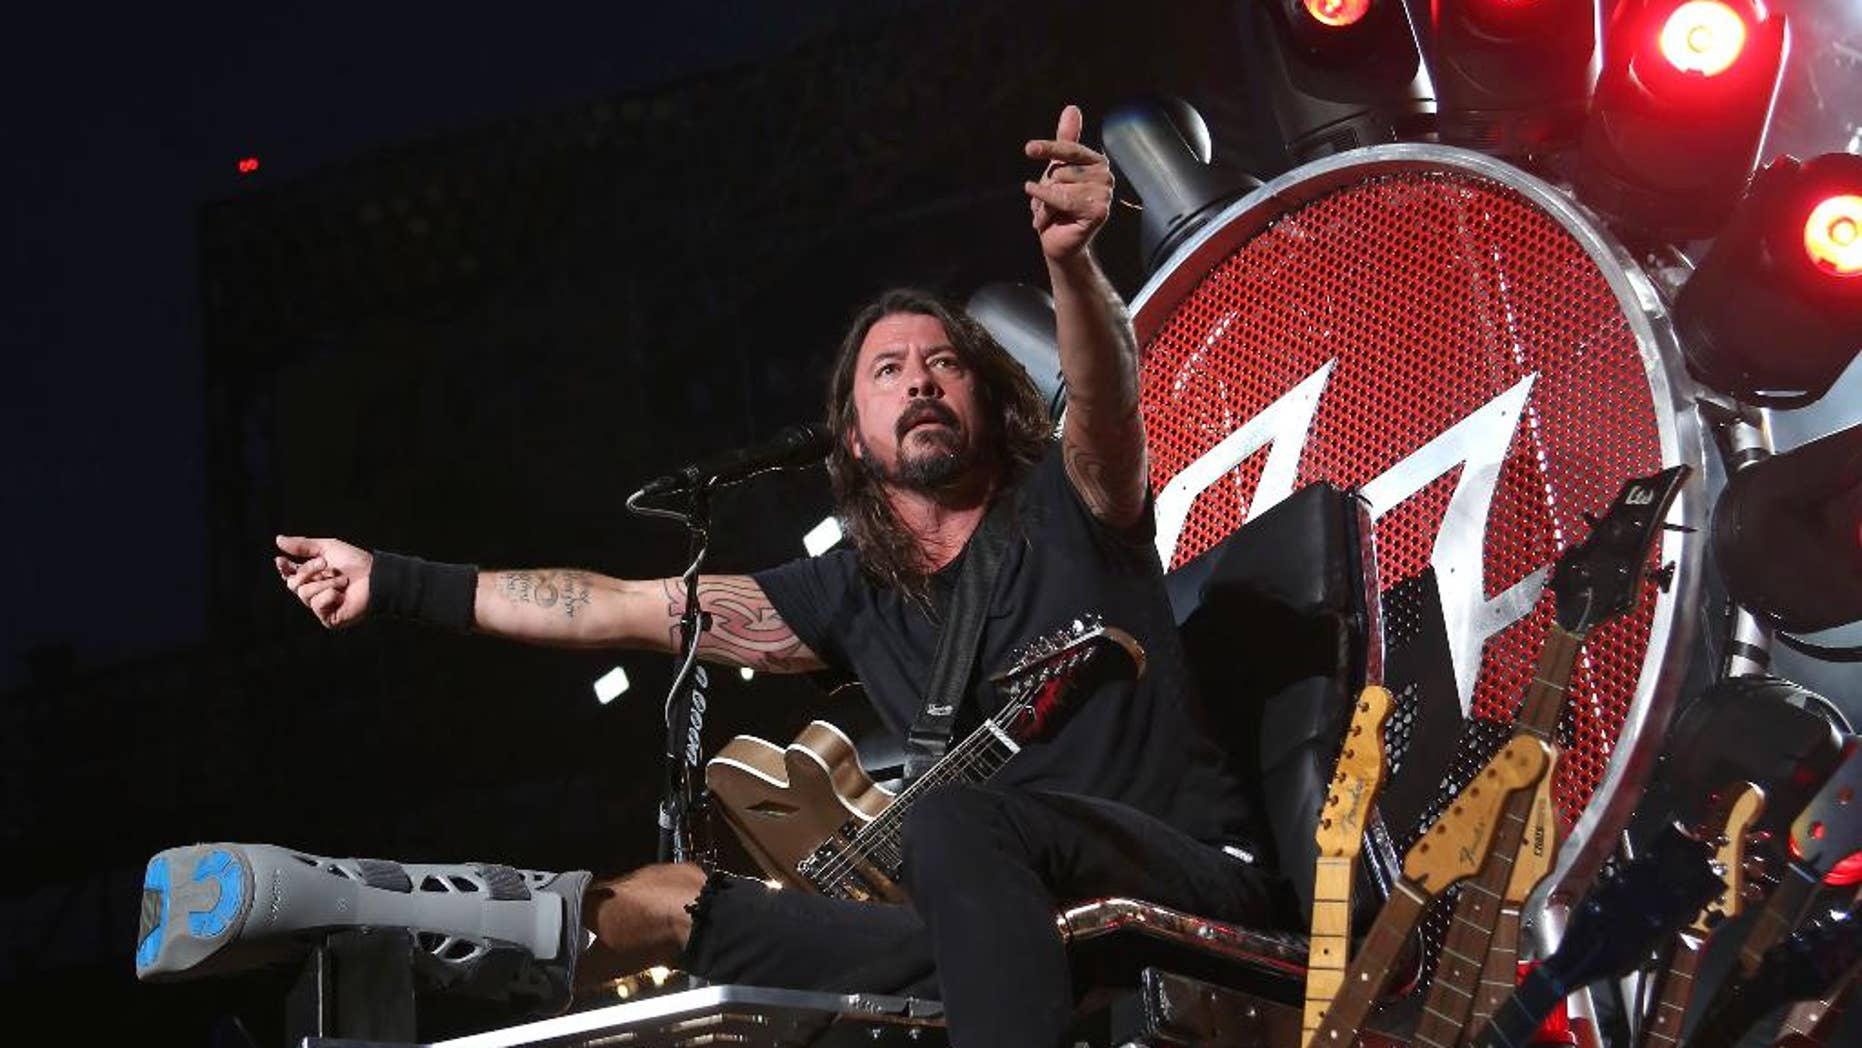 FILE - In this July 15, 2015 file photo, Dave Grohl of the Foo Fighters performs at Citi Field in New York. The band is suing insurers for failing to reimburse them for European shows they canceled following the Paris terrorist attacks in November. (Photo by Greg Allen/Invision/AP, File)